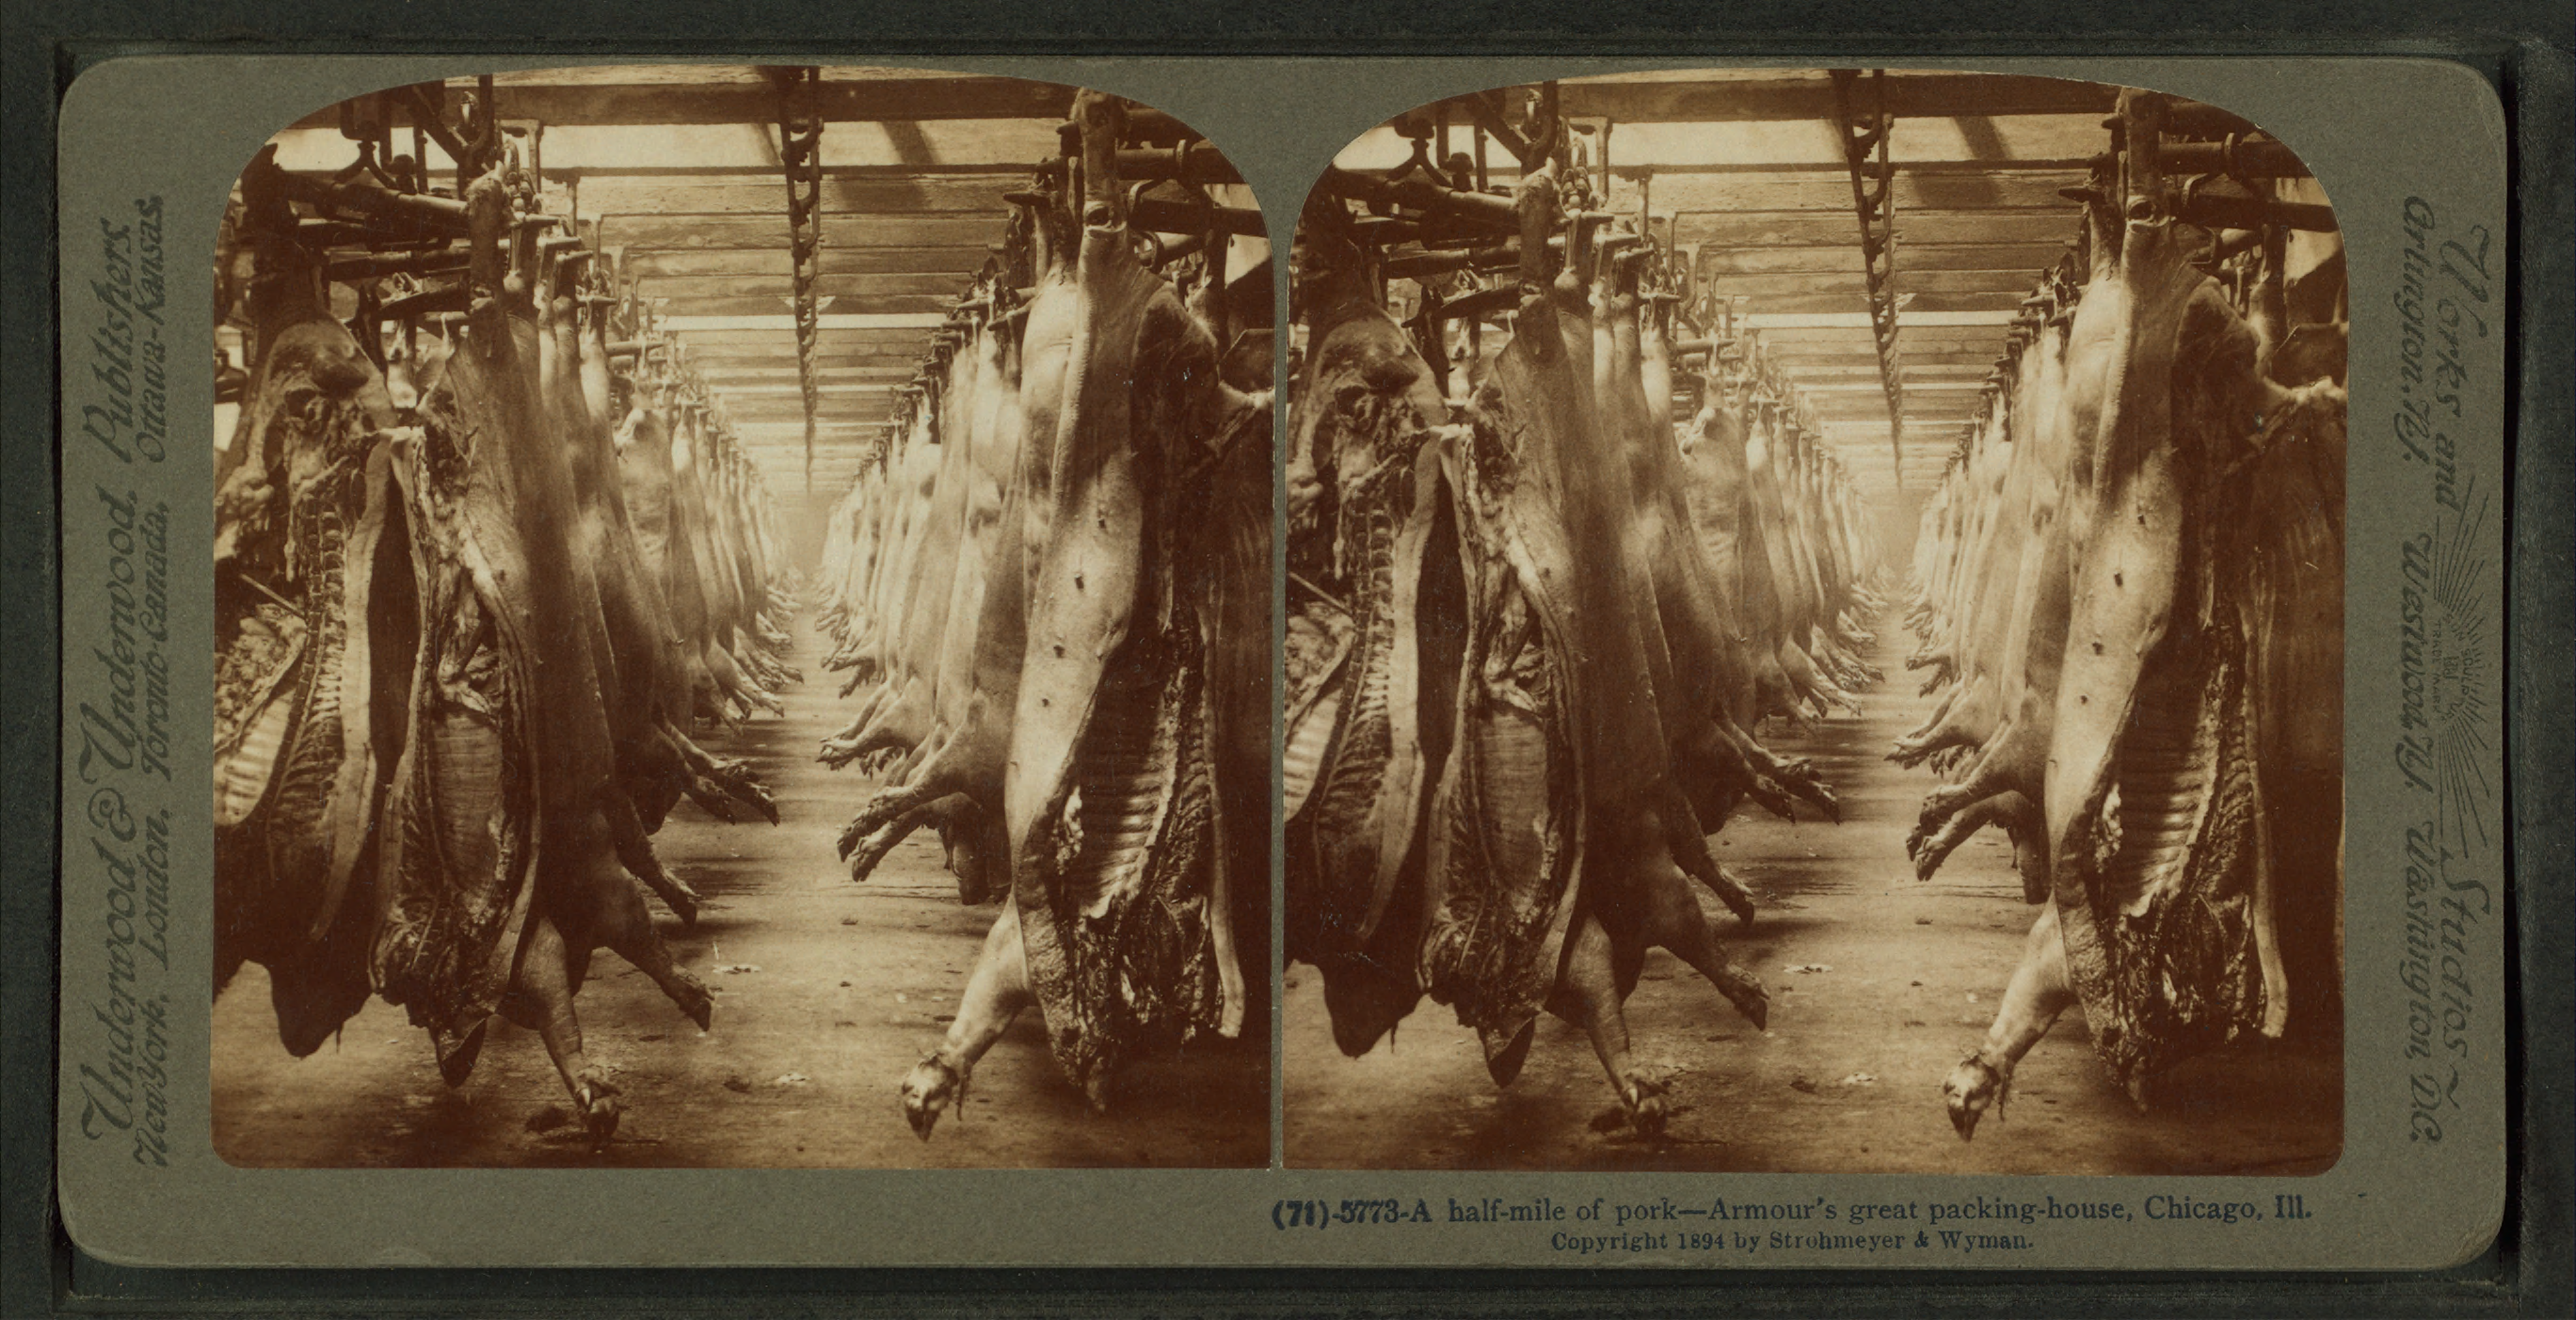 http://upload.wikimedia.org/wikipedia/commons/6/63/A_half-mile_of_pork%2C_Armour%27s_great_packing_house%2C_Chicago%2C_Ill%2C_from_Robert_N._Dennis_collection_of_stereoscopic_views.png